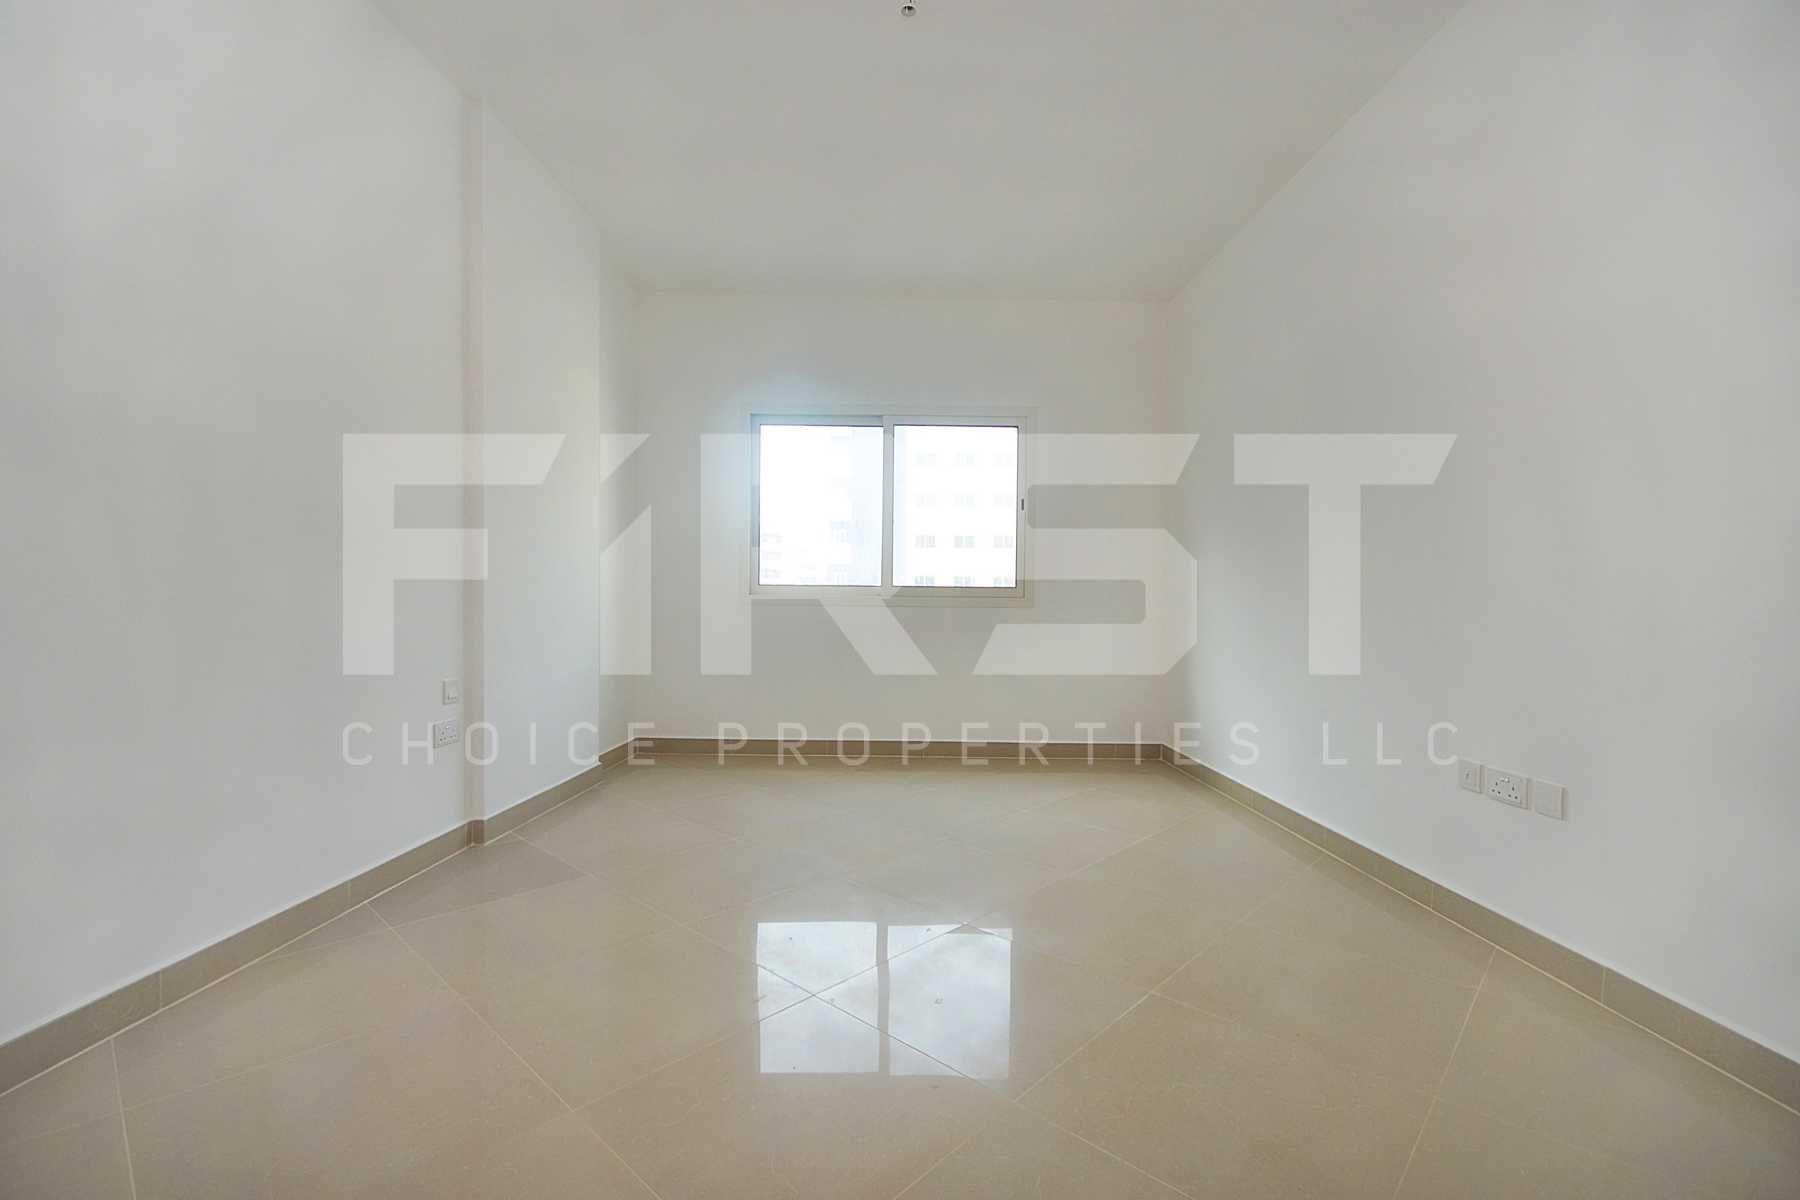 8. Internal Photo of 1 Bedroom Apartment Type C in Al Reef Downtown Al Reef Abu Dhabi UAE 103 sq.m 1108 sq.ft (6).jpg